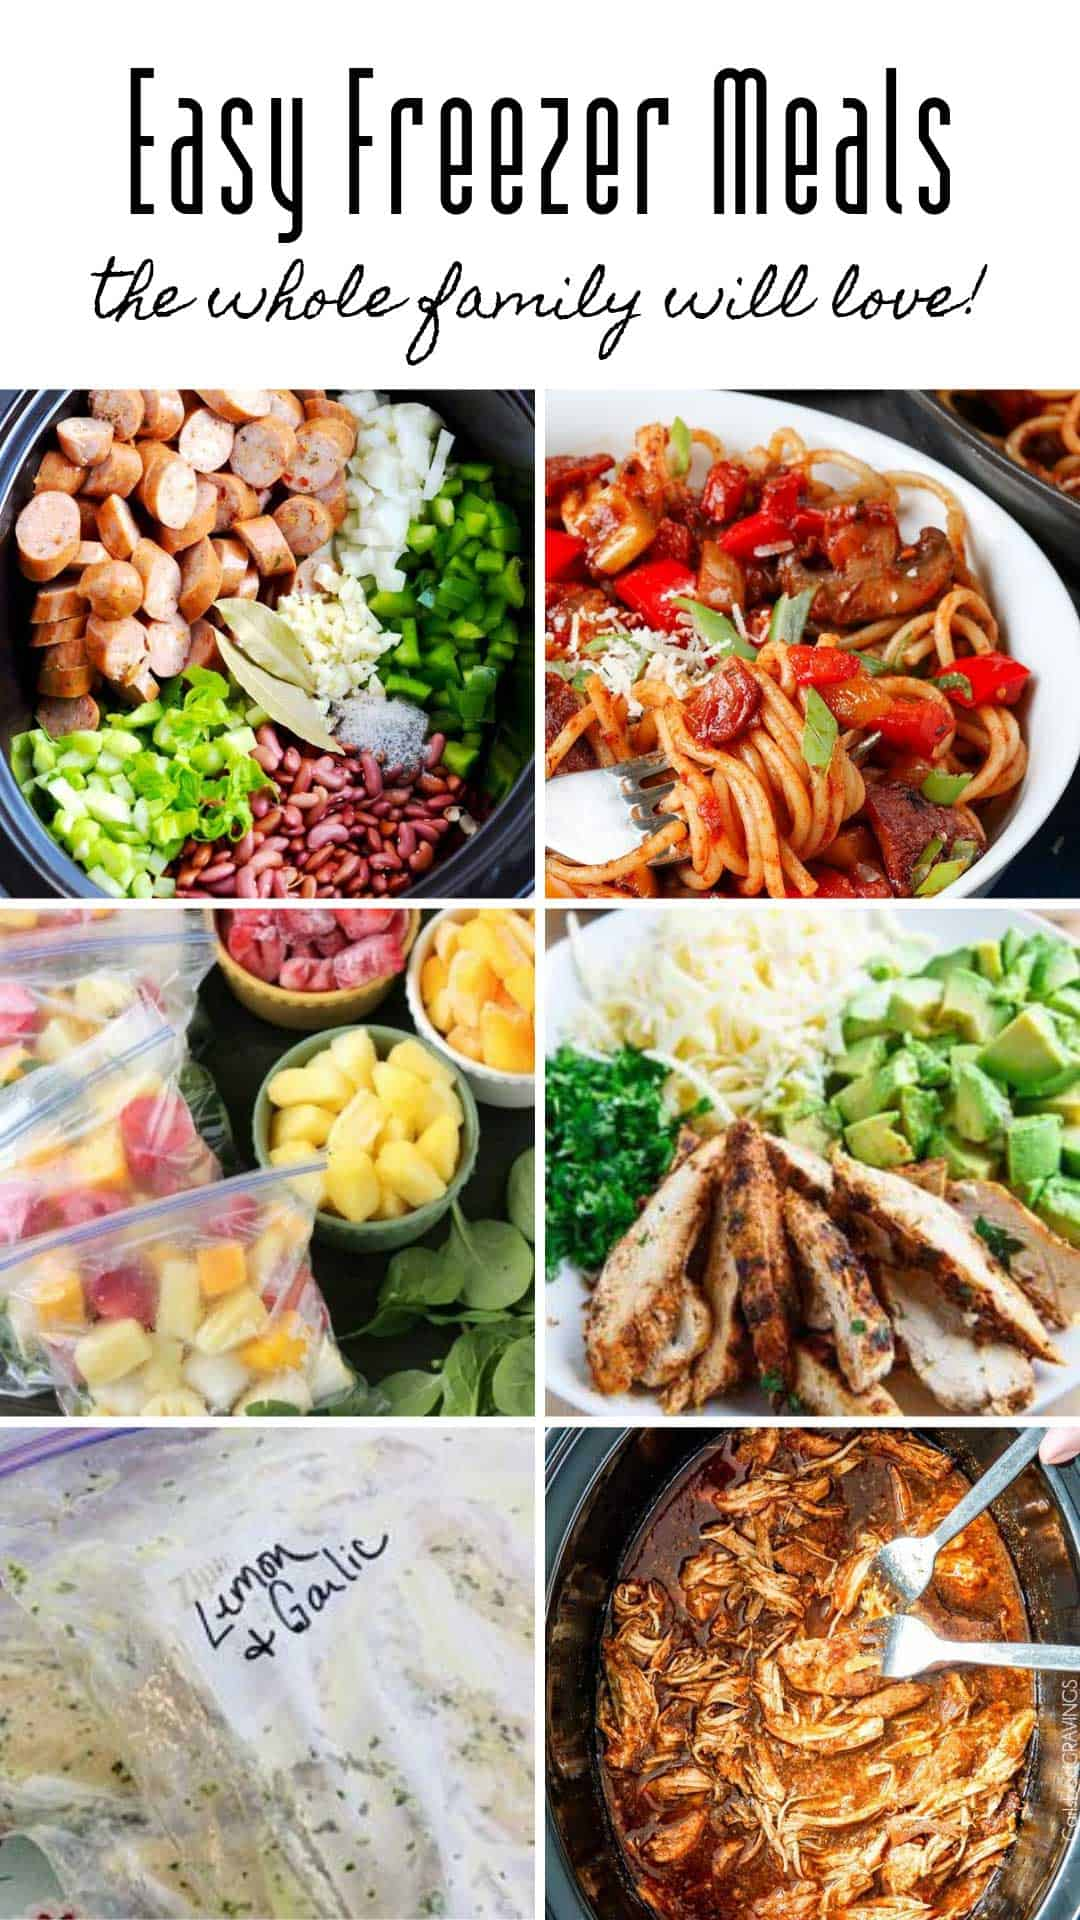 These kid friendly freezer meals are a must add to your meal plan rotation. Batch cooking saves so much time when your weeknights are busy!